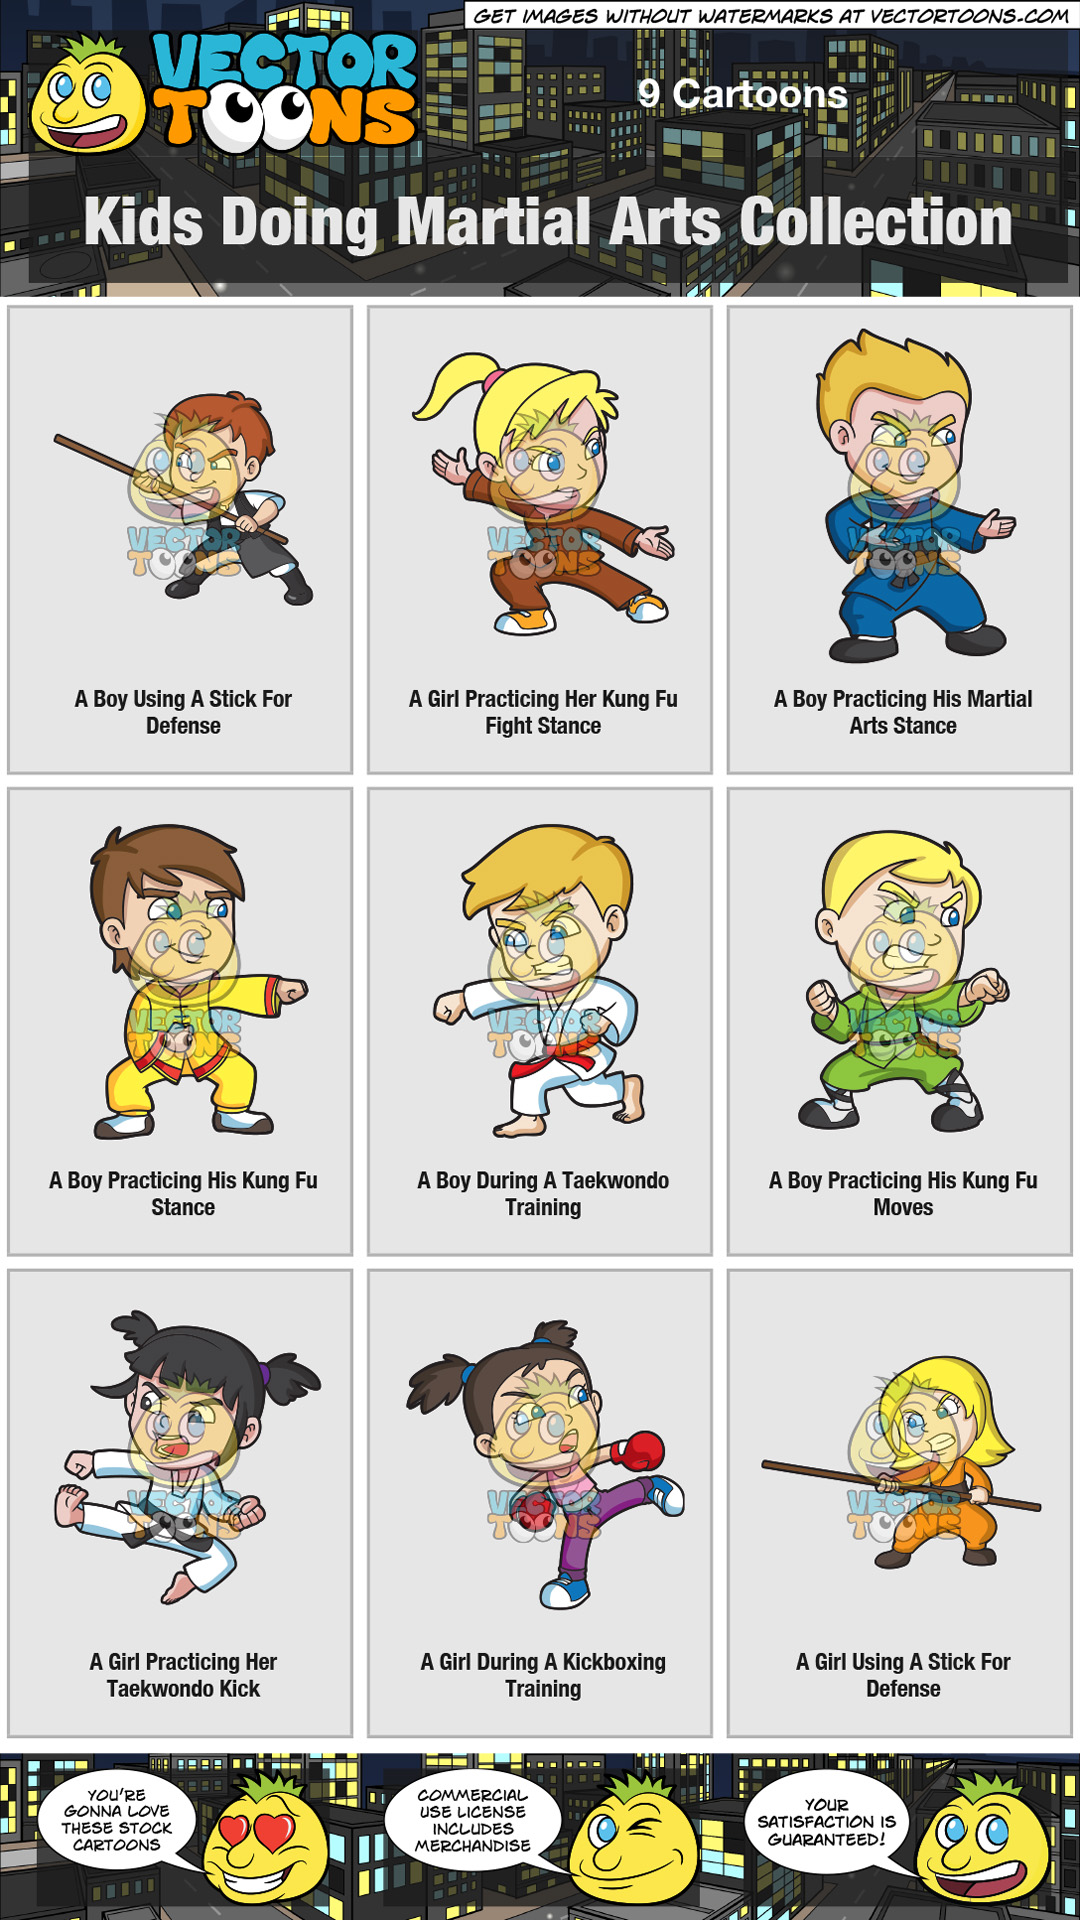 Kids Doing Martial Arts Collection thumbnail